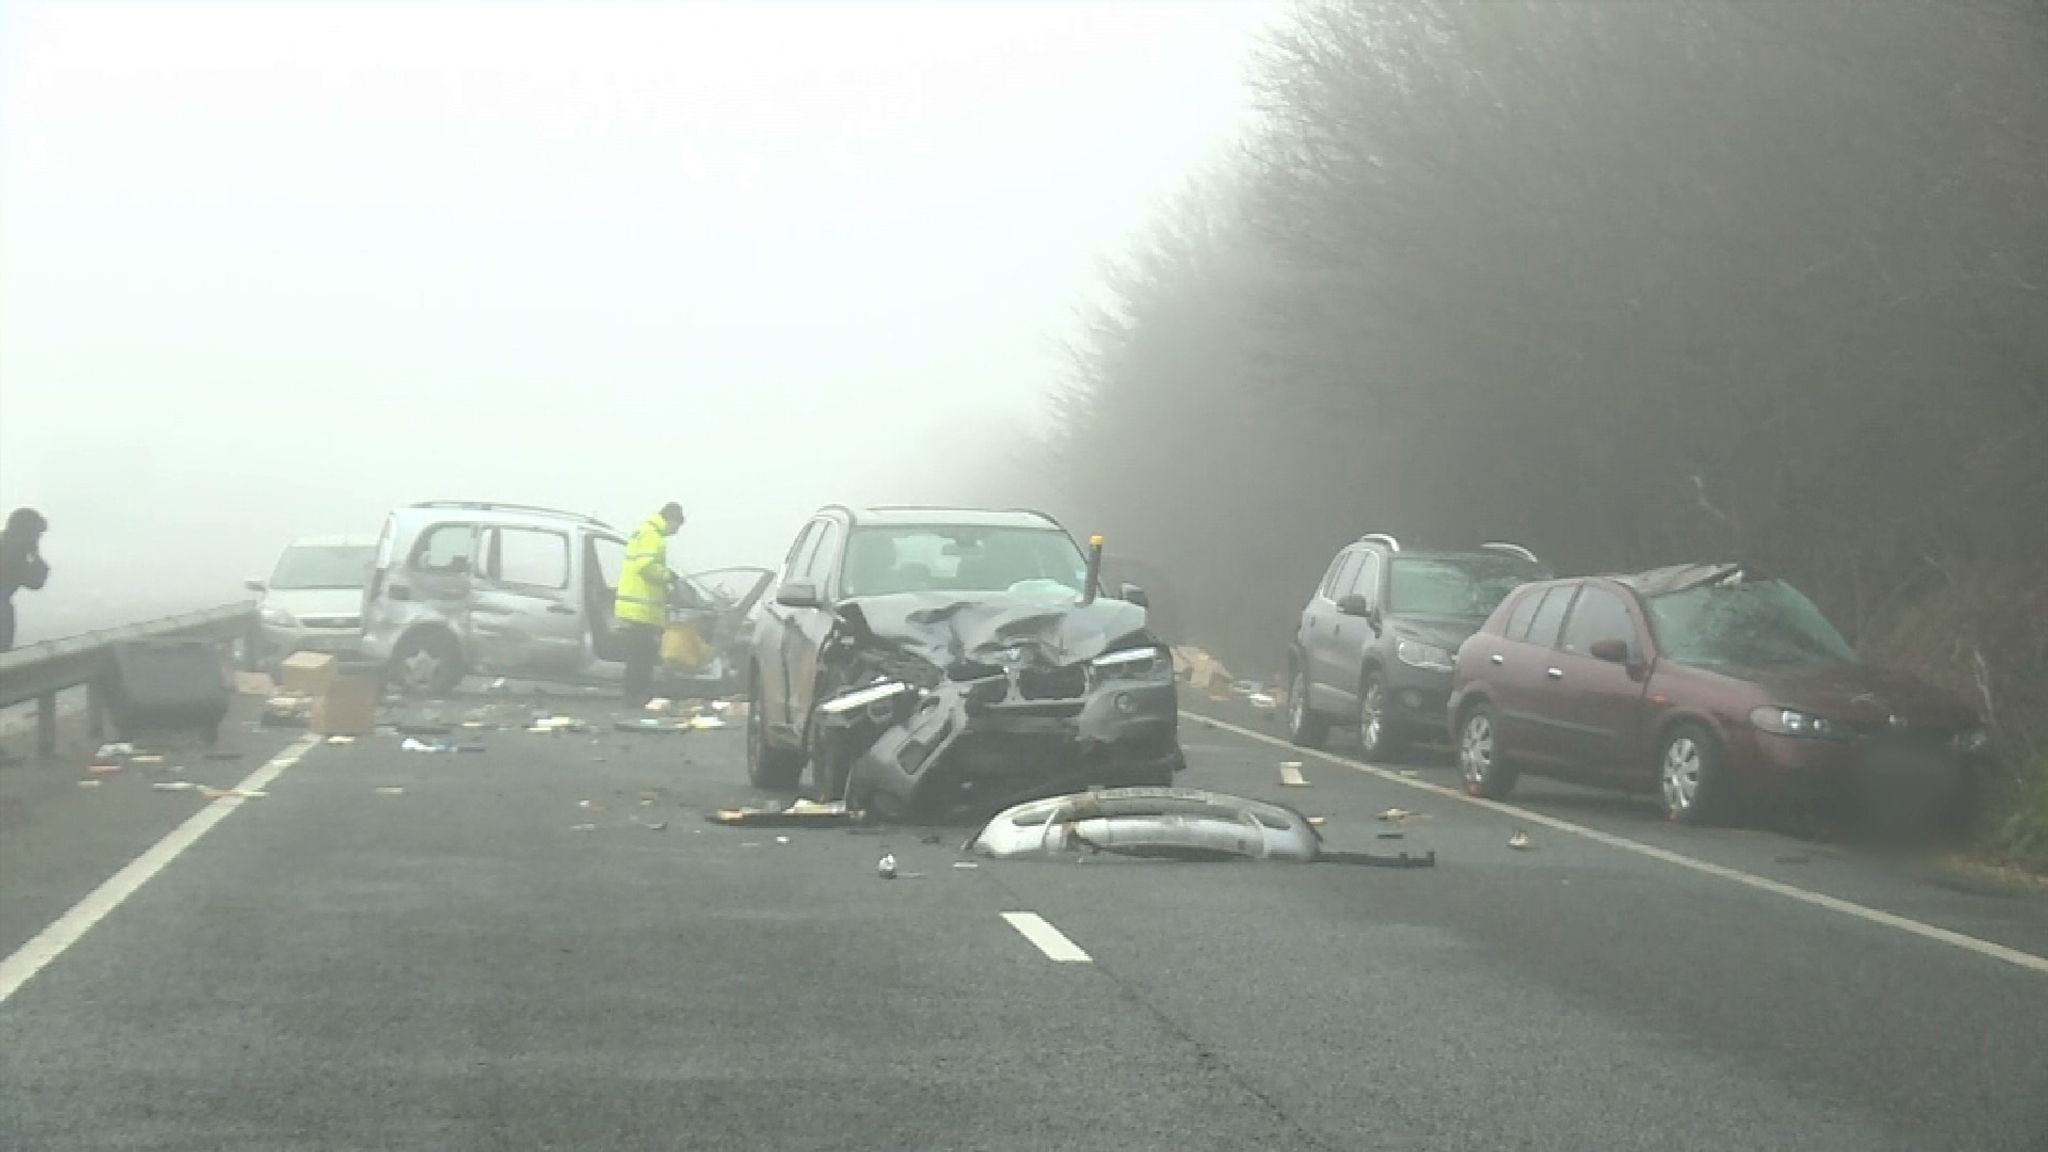 Around 20 cars have been involved in a pile-up on the A40 in Oxfordshire   Sky's Siobhan Robbins reports from the scene